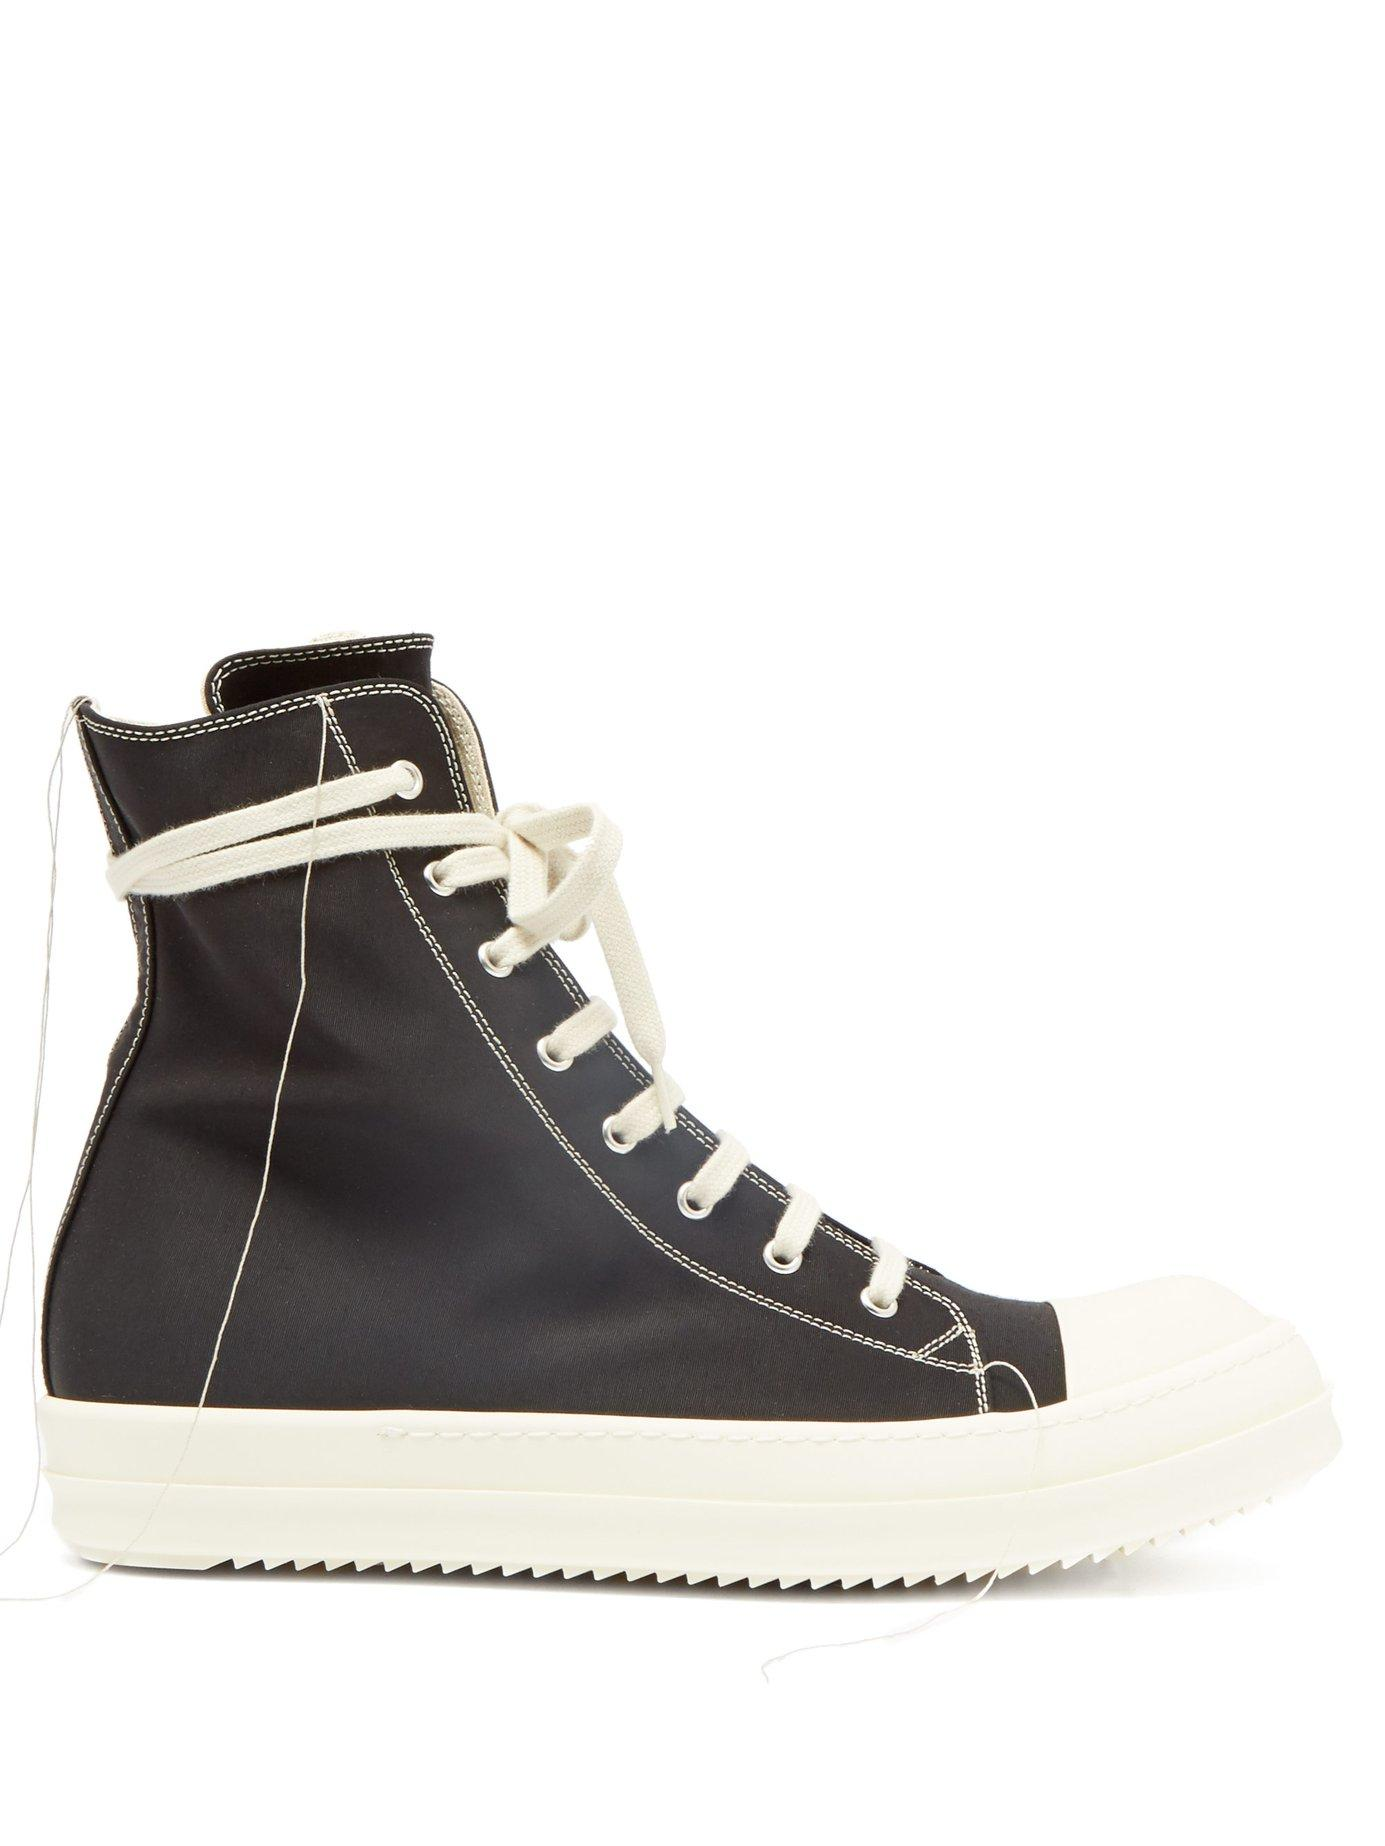 f4dbef6b48bf Lyst - Rick Owens Drkshdw High Top Canvas Trainers in Black for Men